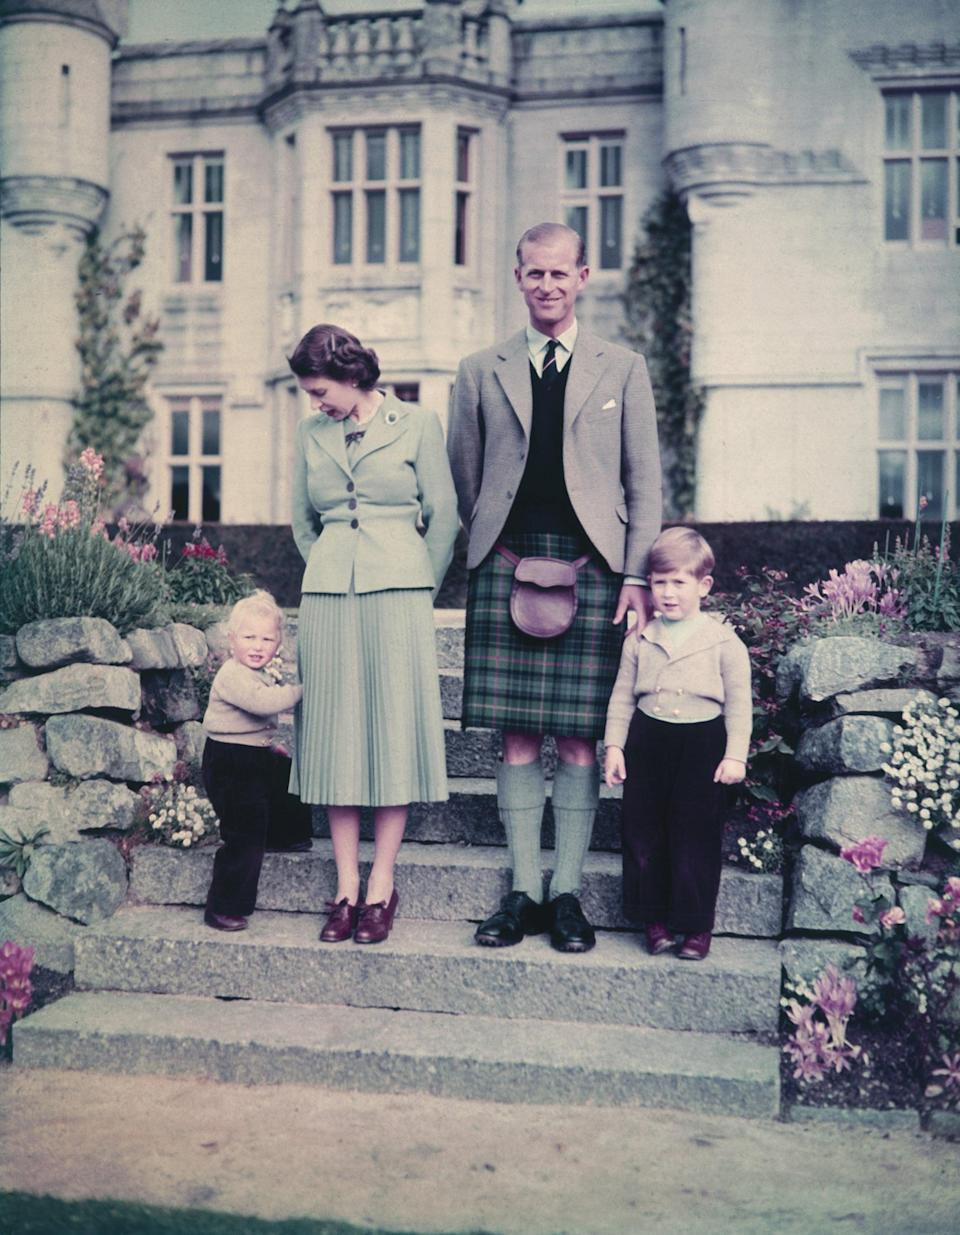 """<ul> <li>Balmoral Castle is passed down through generations of the royal family, so Queen Elizabeth II is the current owner. This separates it from most other royal residences, which are owned by the Crown and are technically public or government property.</li> <li>The queen and her family traditionally <a href=""""http://www.townandcountrymag.com/society/tradition/a12001419/balmoral-castle-scotland/"""" class=""""link rapid-noclick-resp"""" rel=""""nofollow noopener"""" target=""""_blank"""" data-ylk=""""slk:spend several weeks at Balmoral"""">spend several weeks at Balmoral</a> near the end of summer every year.</li> <li>Because of this schedule, <a href=""""http://www.bbc.com/news/av/uk-scotland-41111292"""" class=""""link rapid-noclick-resp"""" rel=""""nofollow noopener"""" target=""""_blank"""" data-ylk=""""slk:the royals were at Balmoral in August 1997"""">the royals were at Balmoral in August 1997</a> when Princess Diana died, which contributed to the public outcry over their apparent slow response.</li> <li>Although the queen would never express such an opinion publicly, Balmoral is popularly understood to be her favorite residence - something which her own family members have alluded to at times. """"I think Granny is the most happy there. I think she really, really loves the Highlands,"""" Princess Eugenie revealed in the documentary <strong>Our Queen at Ninety</strong>.</li> </ul>"""